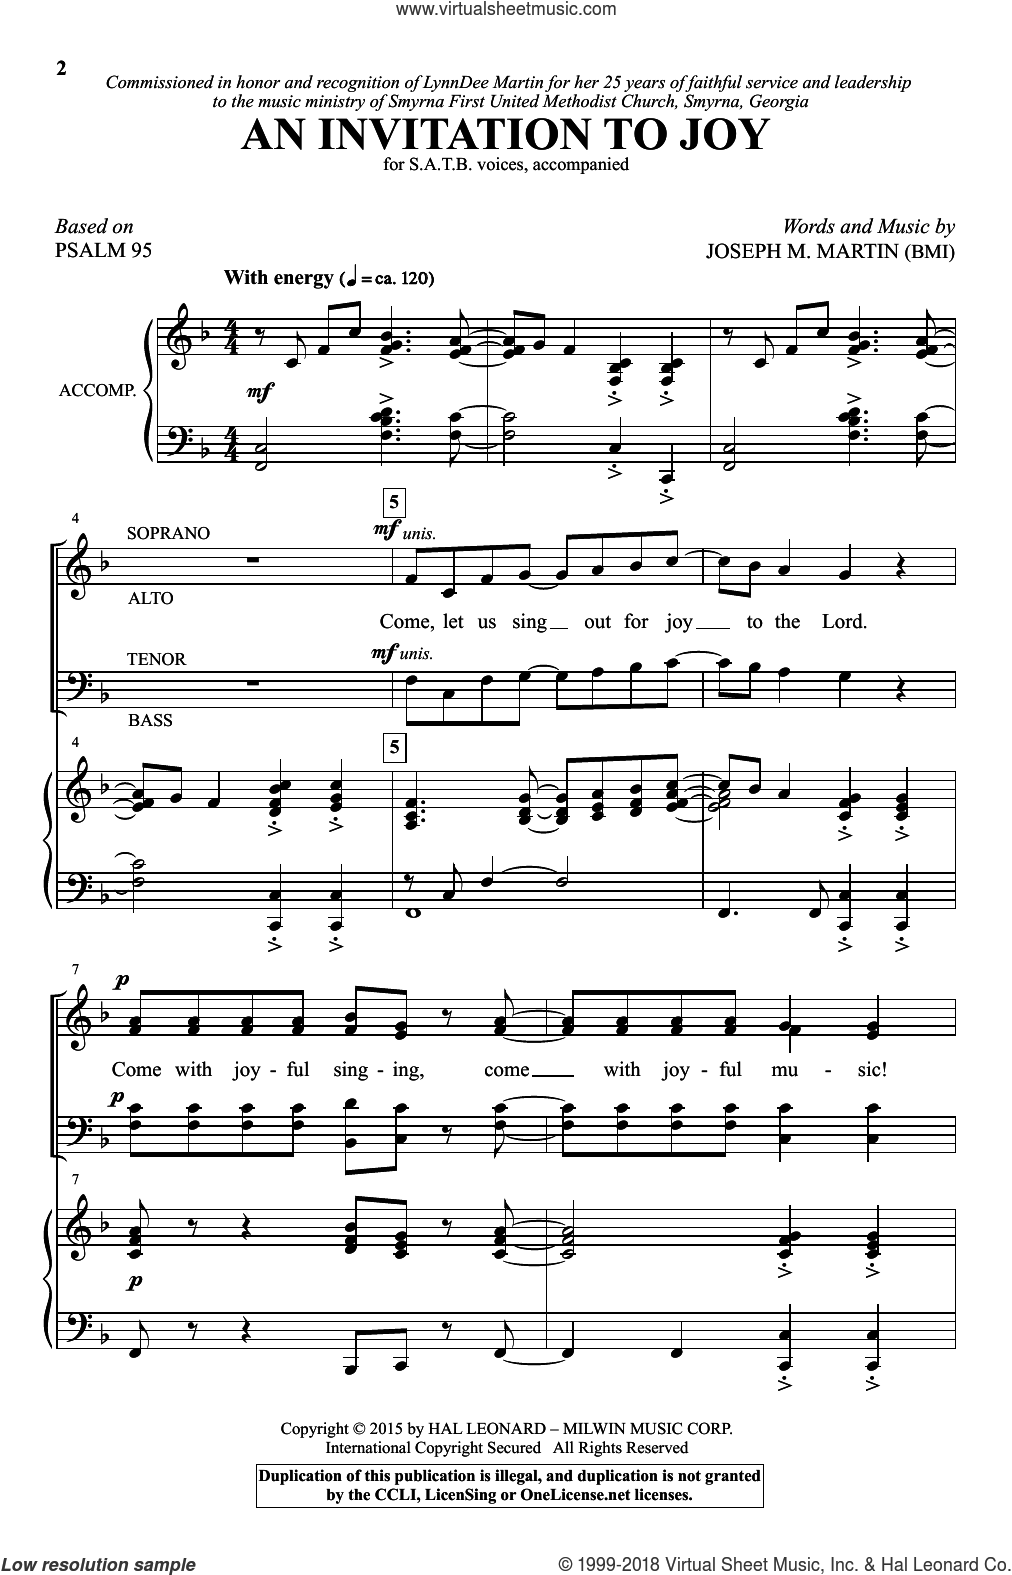 An Invitation To Joy sheet music for choir and piano (SATB) by Psalm 95 and Joseph M. Martin. Score Image Preview.